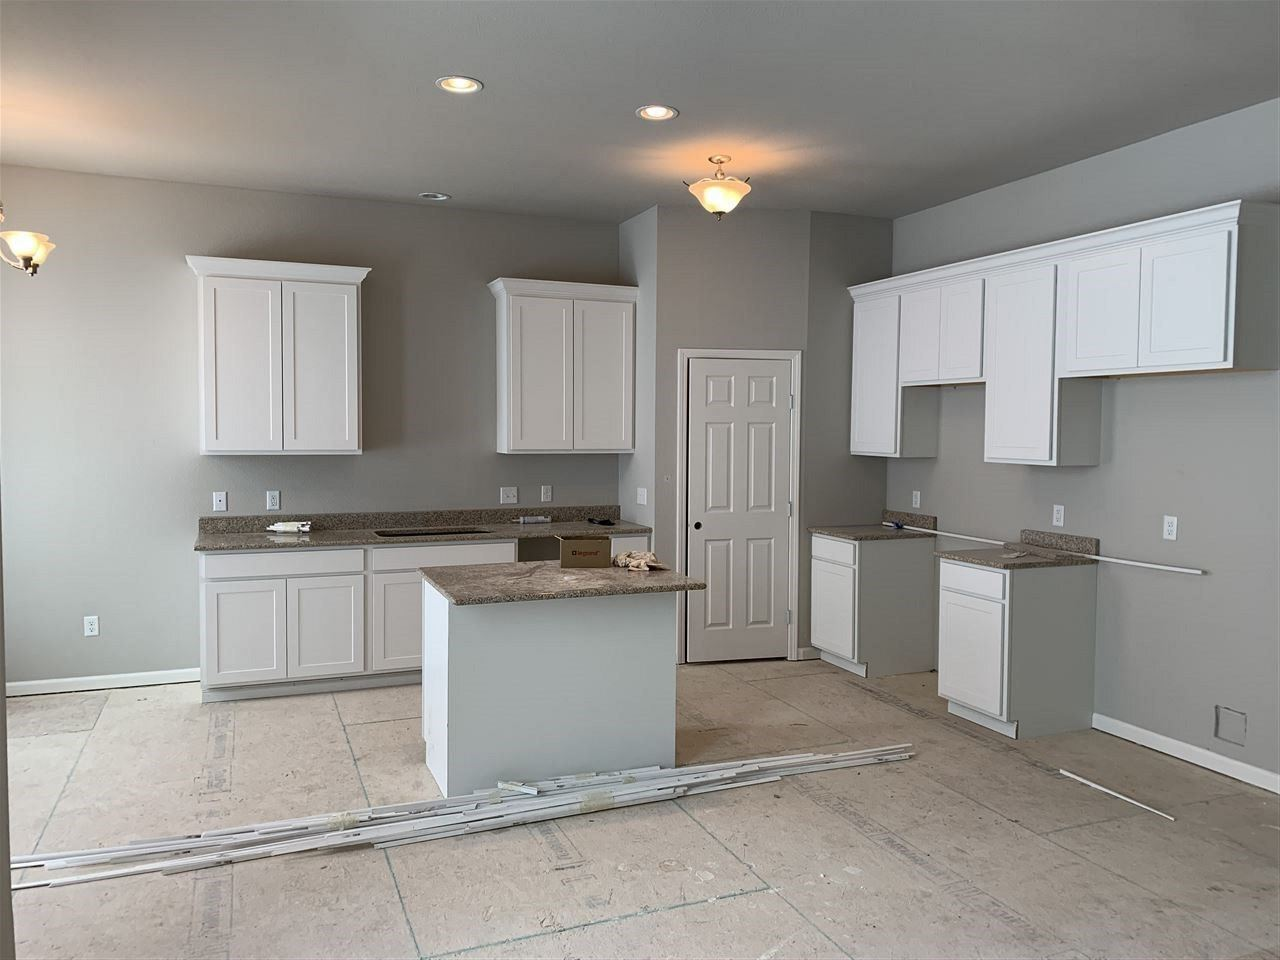 f_1906138_02 Our Listings at Best Realty of Edgerton